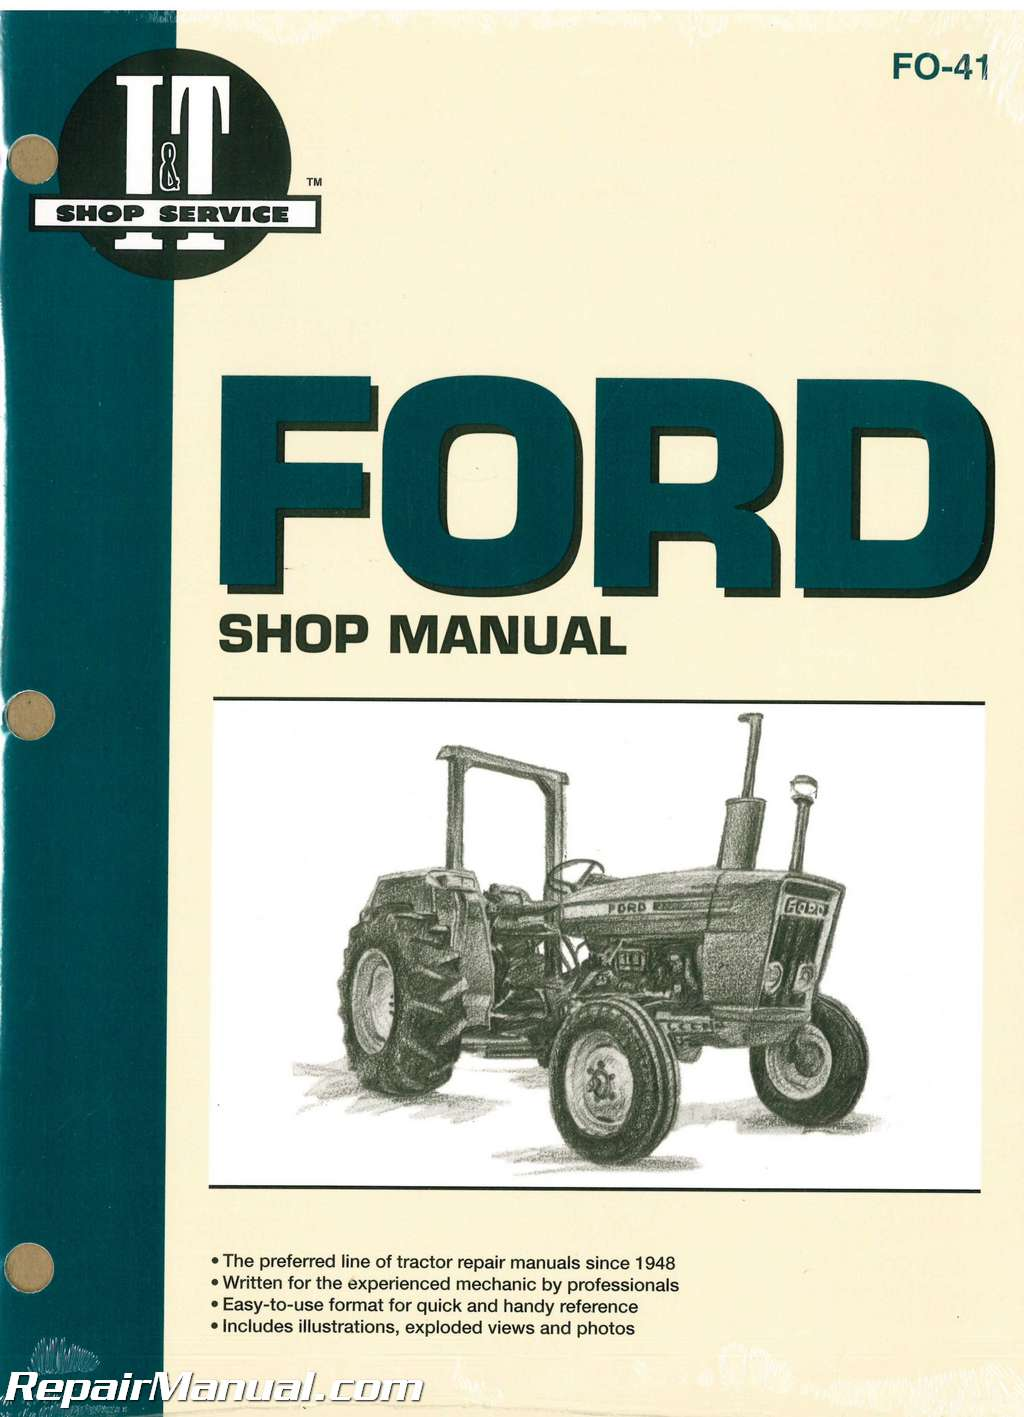 Ford New Holland 2310 2600 2610 3600 3610 4100 After 1974 4110 4600 4610  Prior To 1984 4600SU 4610SU Prior To 1984 Tractor Manual